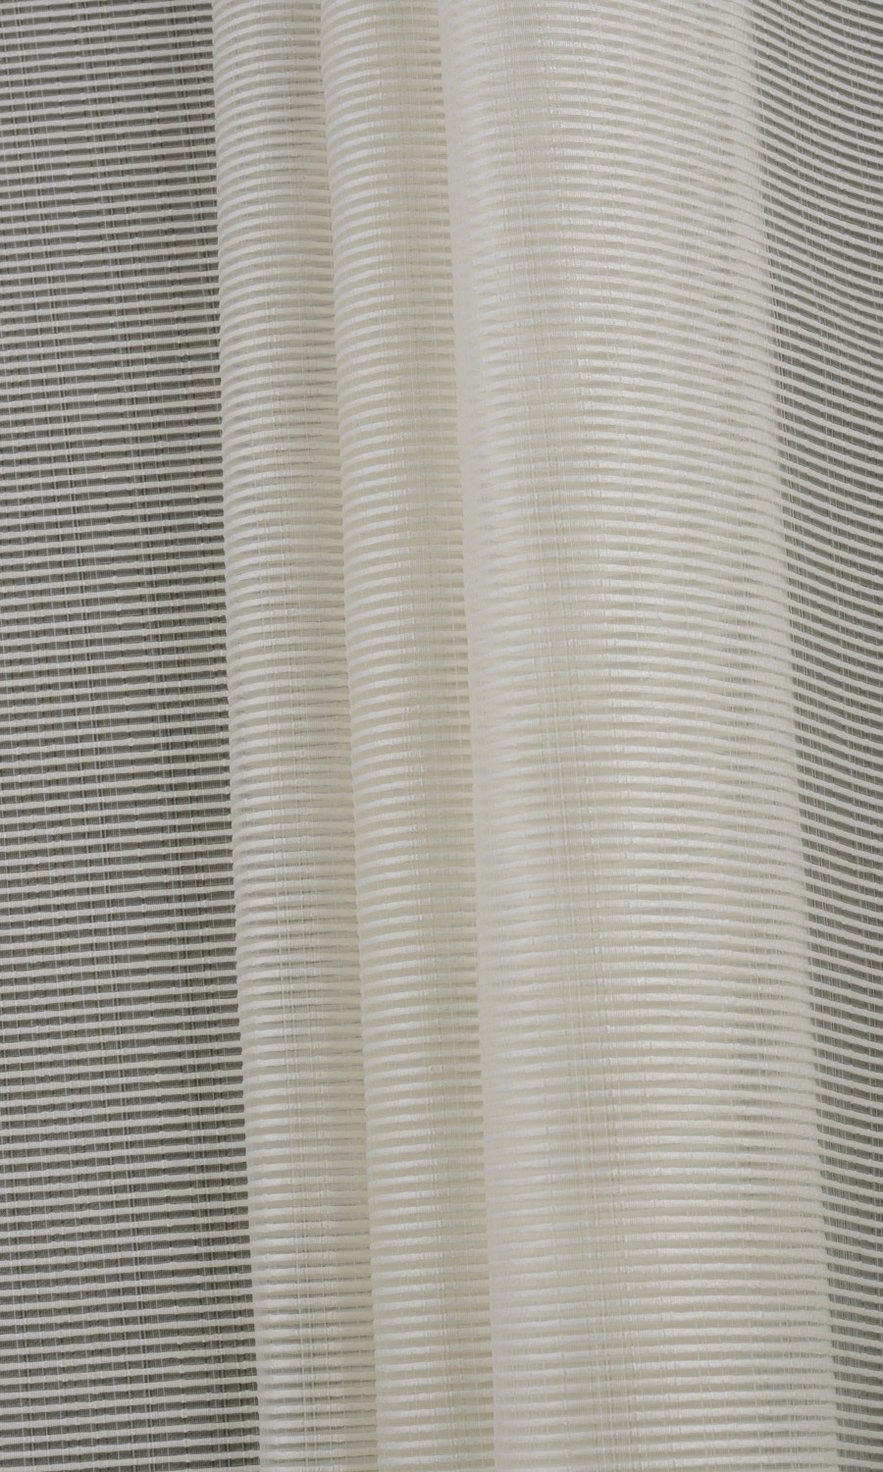 White Striped Sheer Custom Drapery